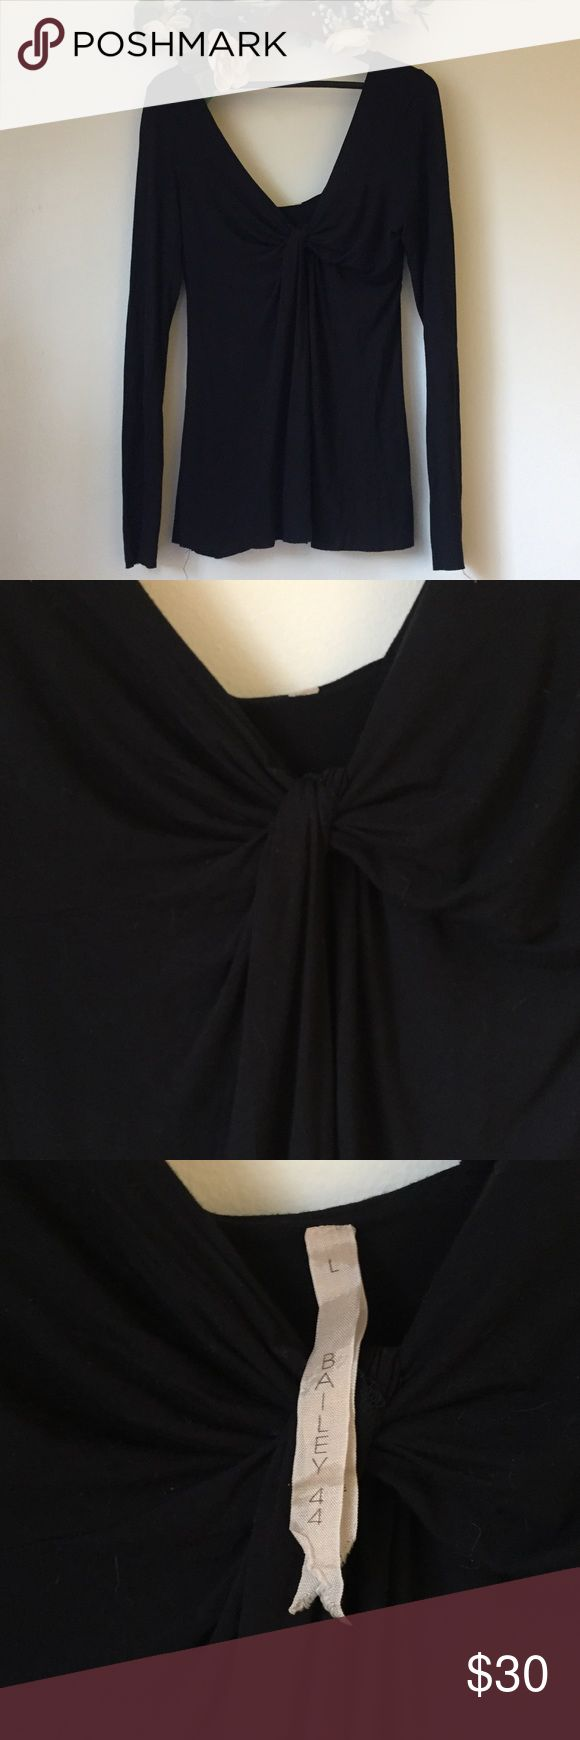 Bailey 44 black blouse in Large This is a gently used Bailey 44 Blouse in size large. The color is black and there are no holes or stains on this blouse. It has a very stretchy and soft material. With a V neck line Bailey 44 Tops Blouses